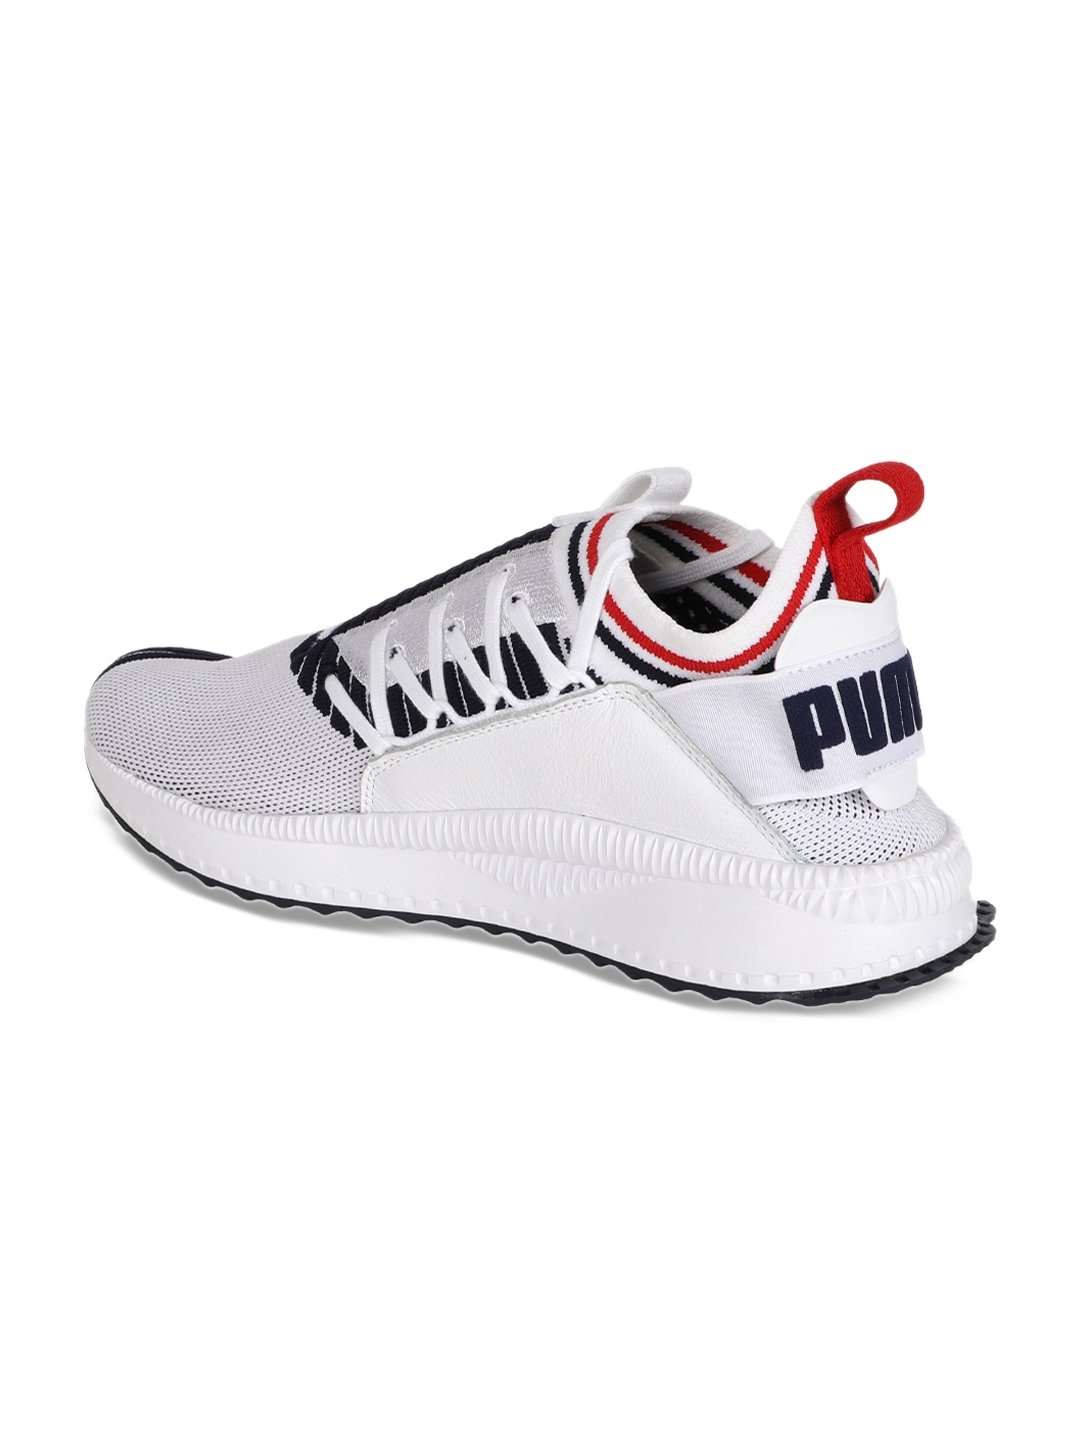 87ca1edaefb Buy Puma Unisex White TSUGI Jun Sport Stripes Sneakers - Casual ...